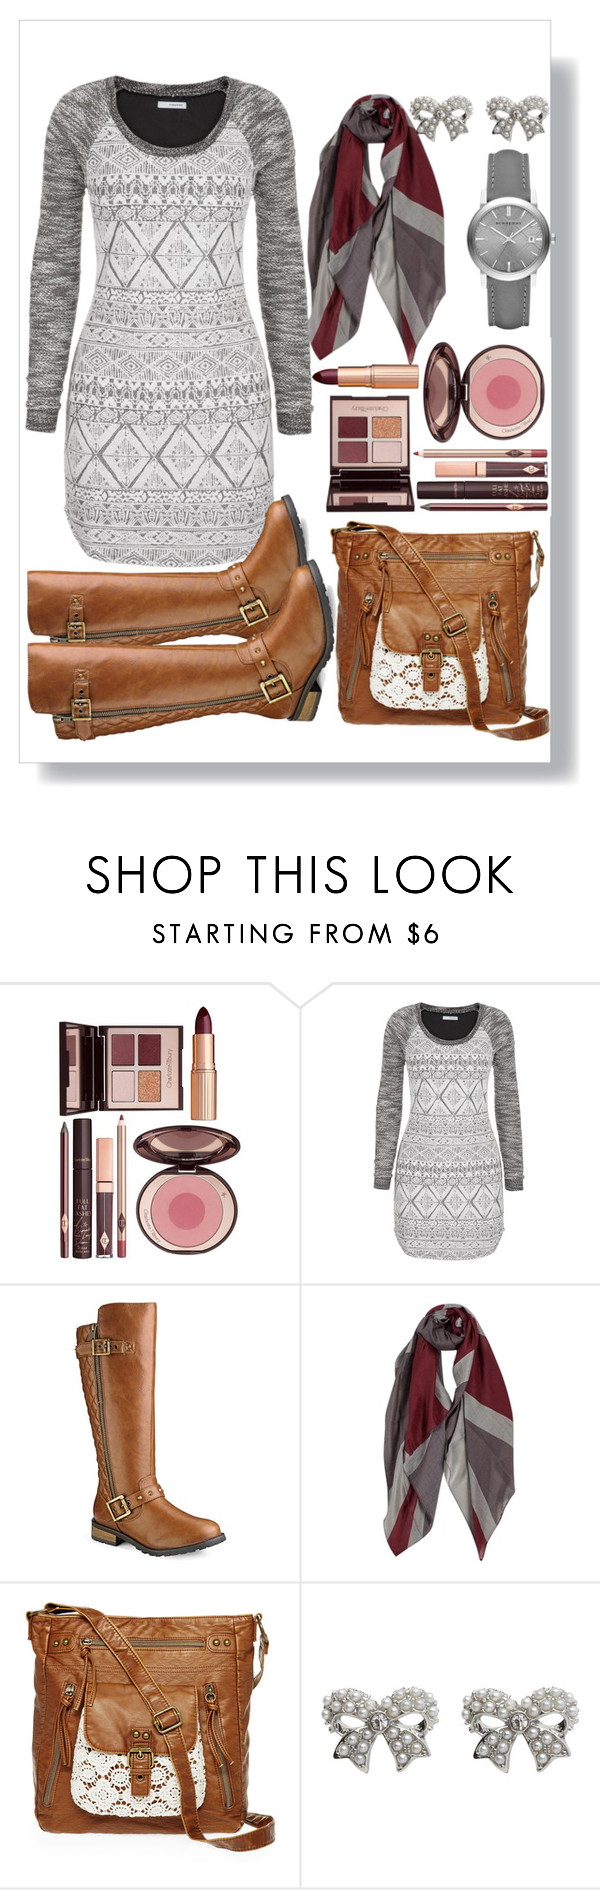 """""""Untitled #75"""" by ckitshoff ❤ liked on Polyvore featuring мода, Charlotte Tilbury, maurices, T-shirt & Jeans, M&Co и Burberry"""